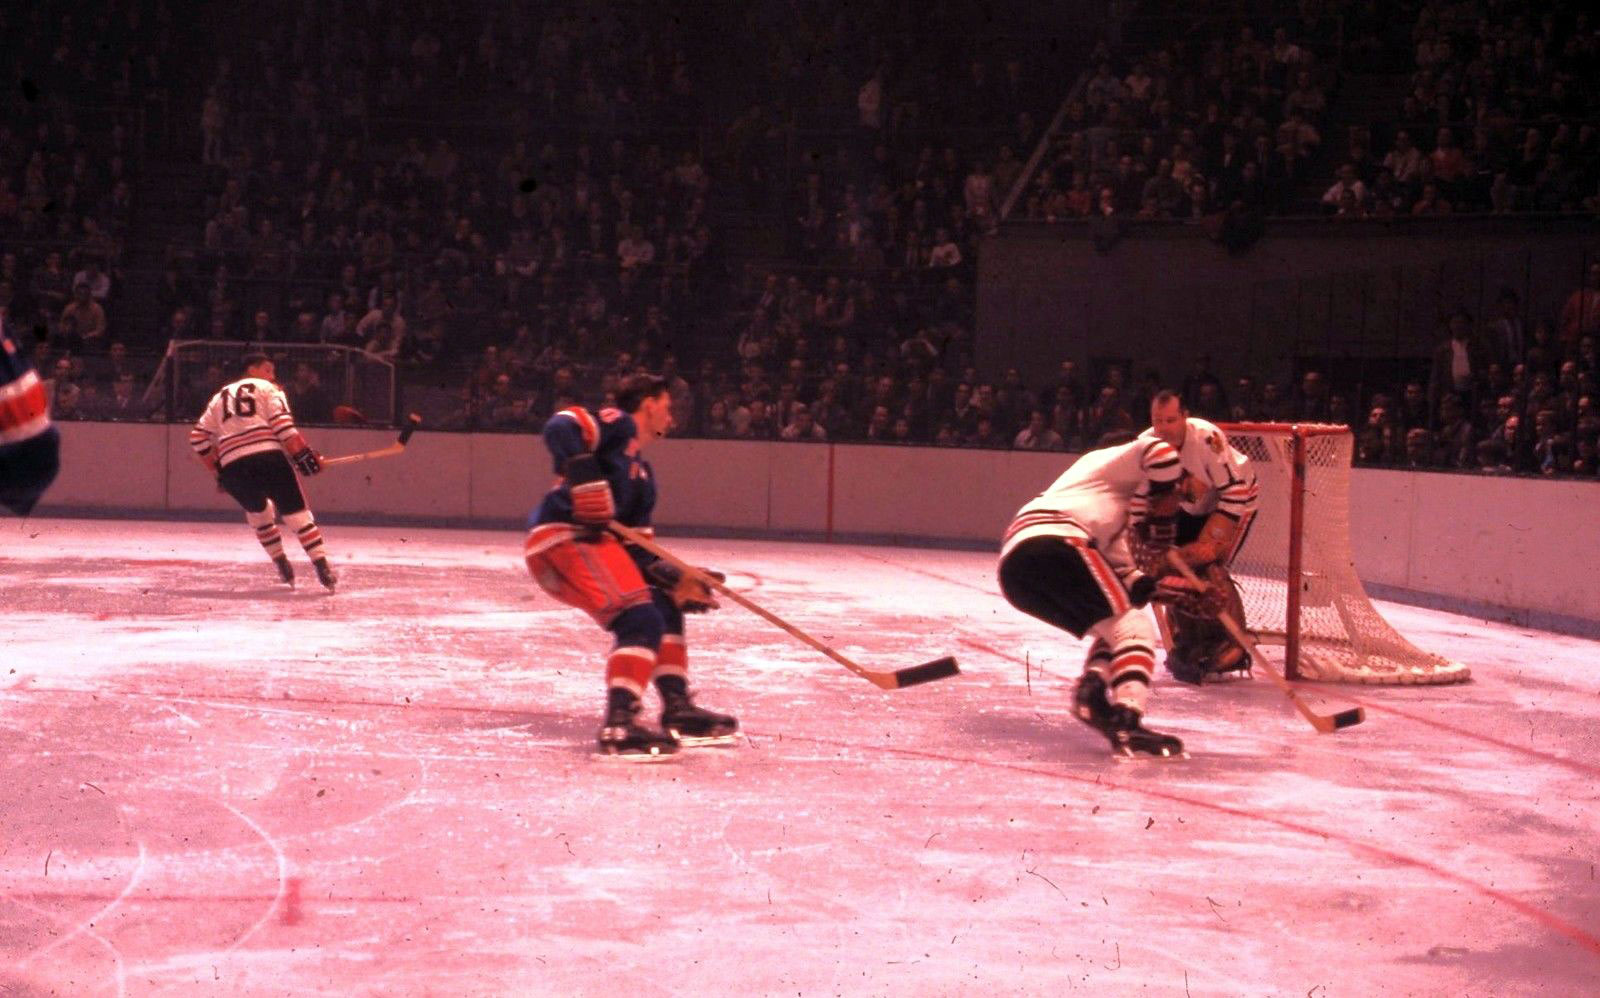 The Sporting Life #1: Rangers vs. Black Hawks, c. 1960s